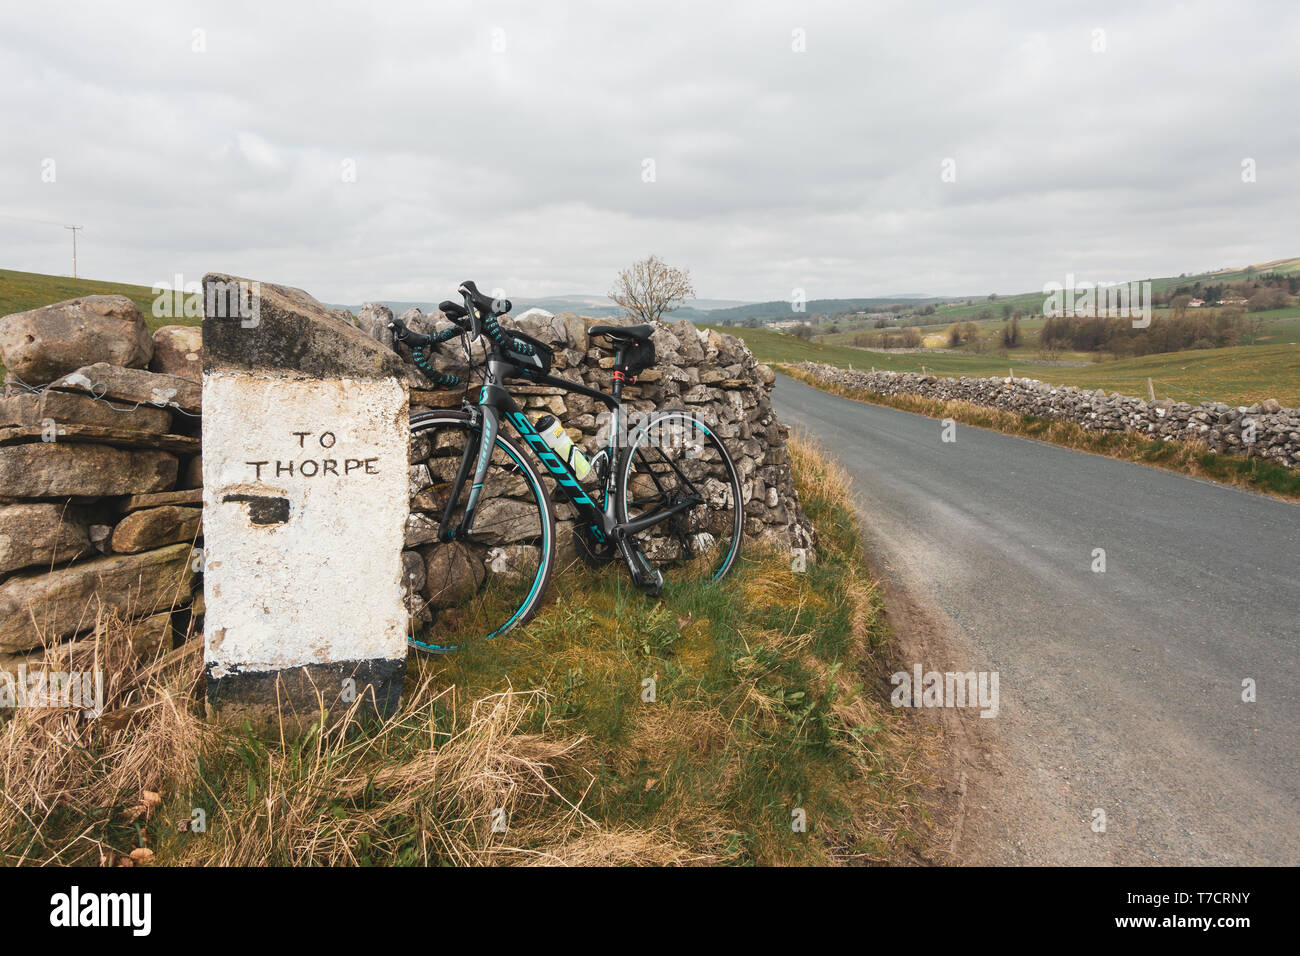 Quaint signpost to Thorpe with a pointing finger and a road bike leaned up next to it, Yorkshire Dales, UK - Stock Image